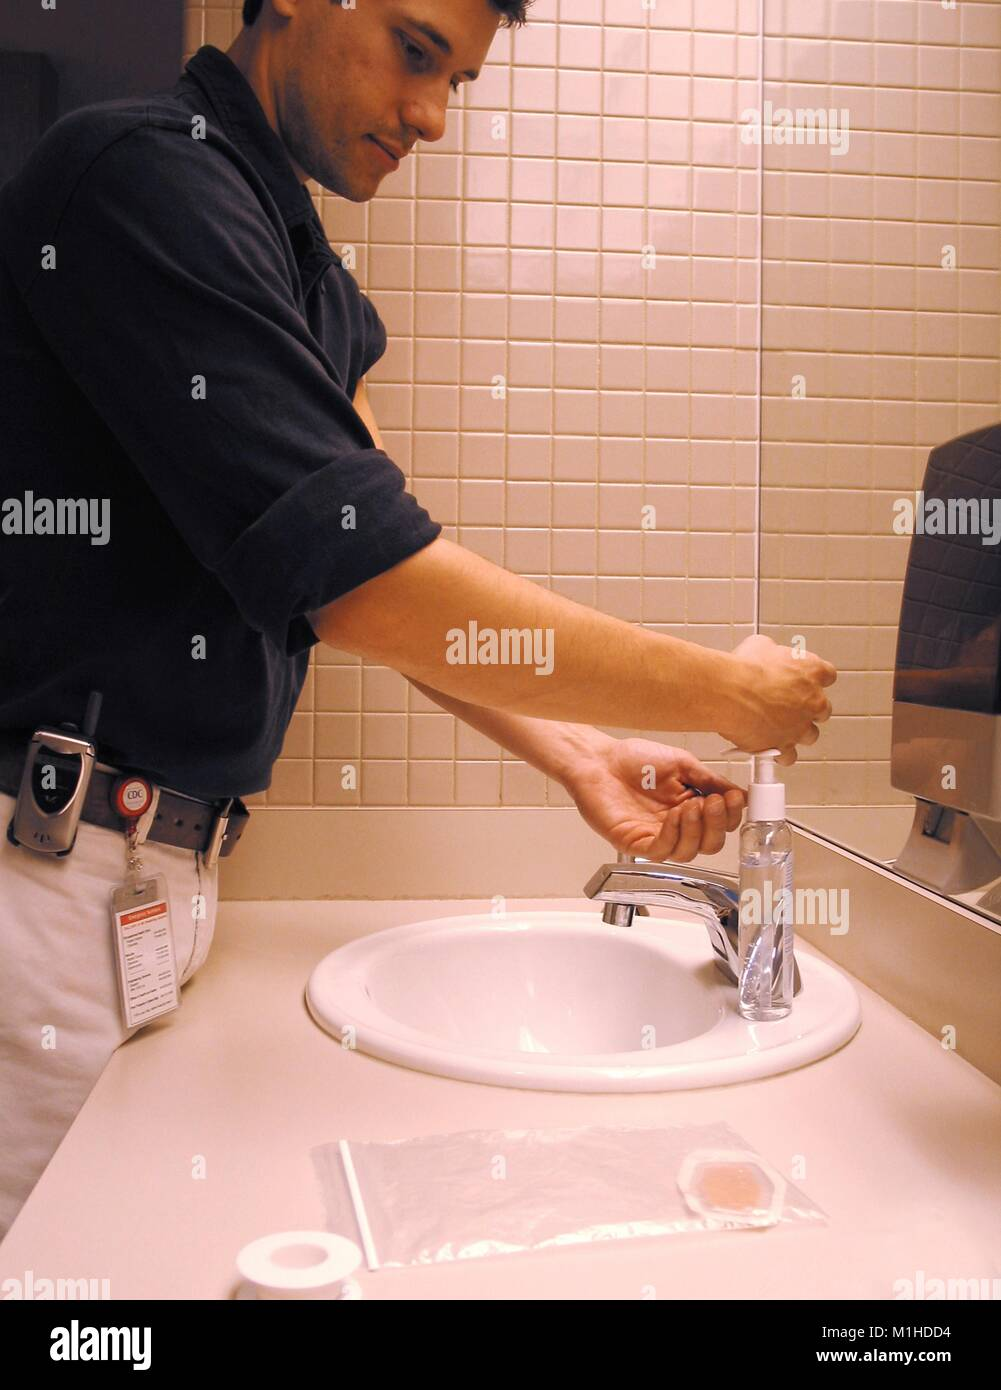 A picture of a man washing his hands with soap after receiving a smallpox vaccination, as part of the hygiene protocol - Stock Image